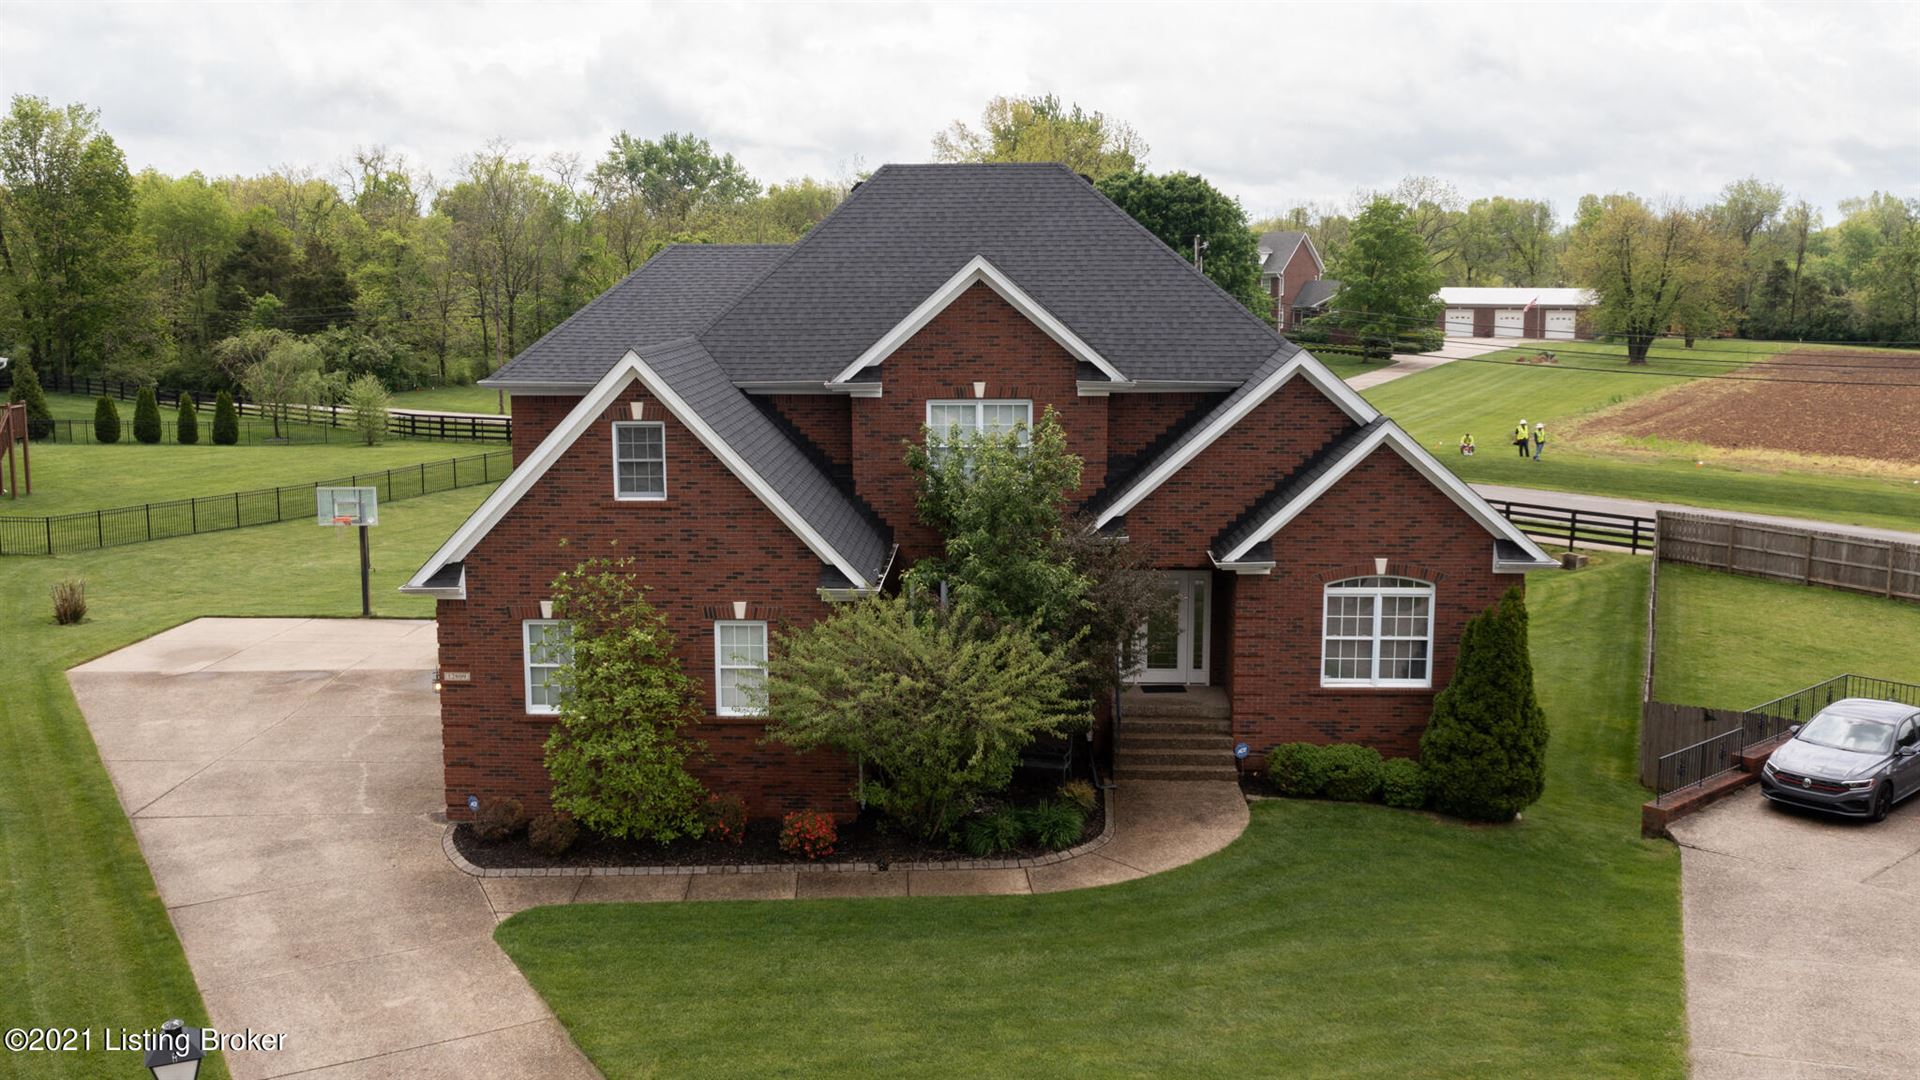 Photo of 12809 Willow Park Dr, Louisville, KY 40299 (MLS # 1584882)